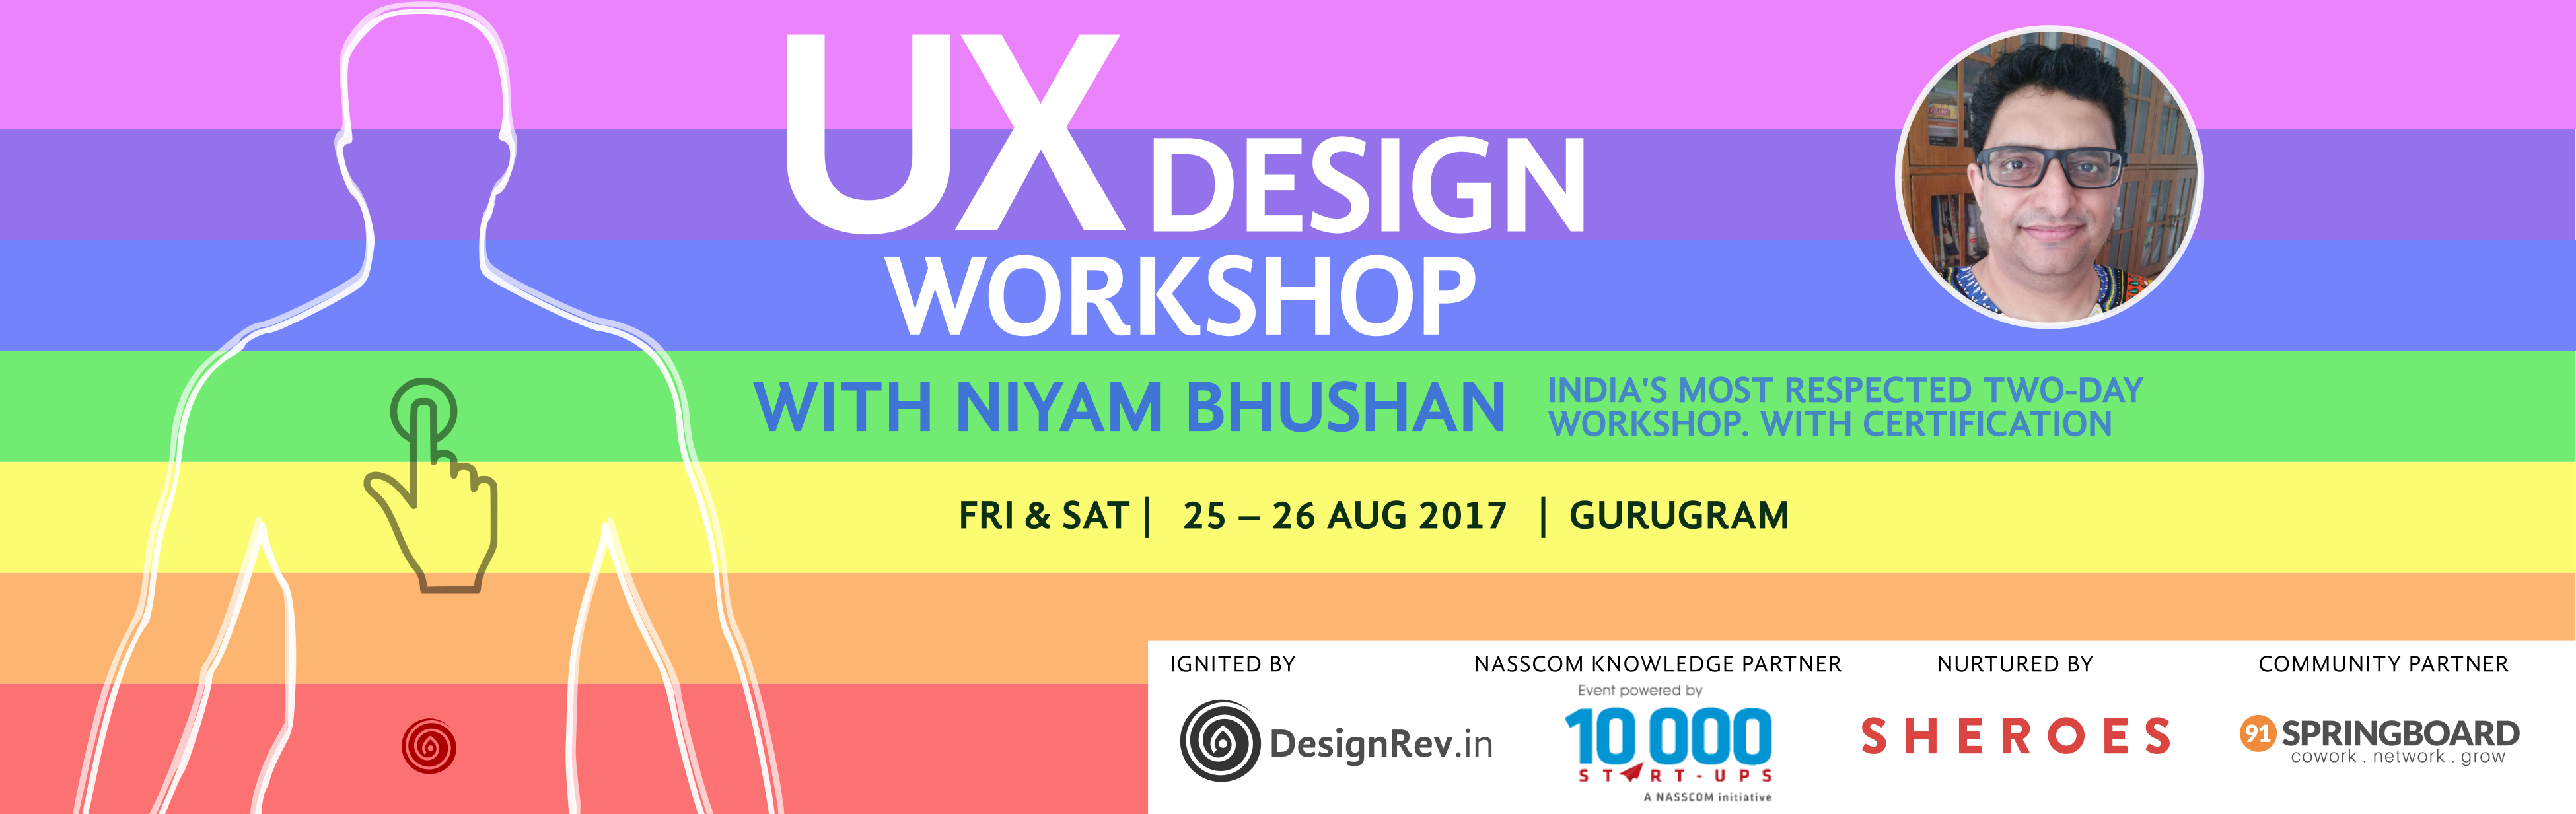 UX Design Workshop. 25 Aug 2017 to 26 Aug 2017, Gurugram, India